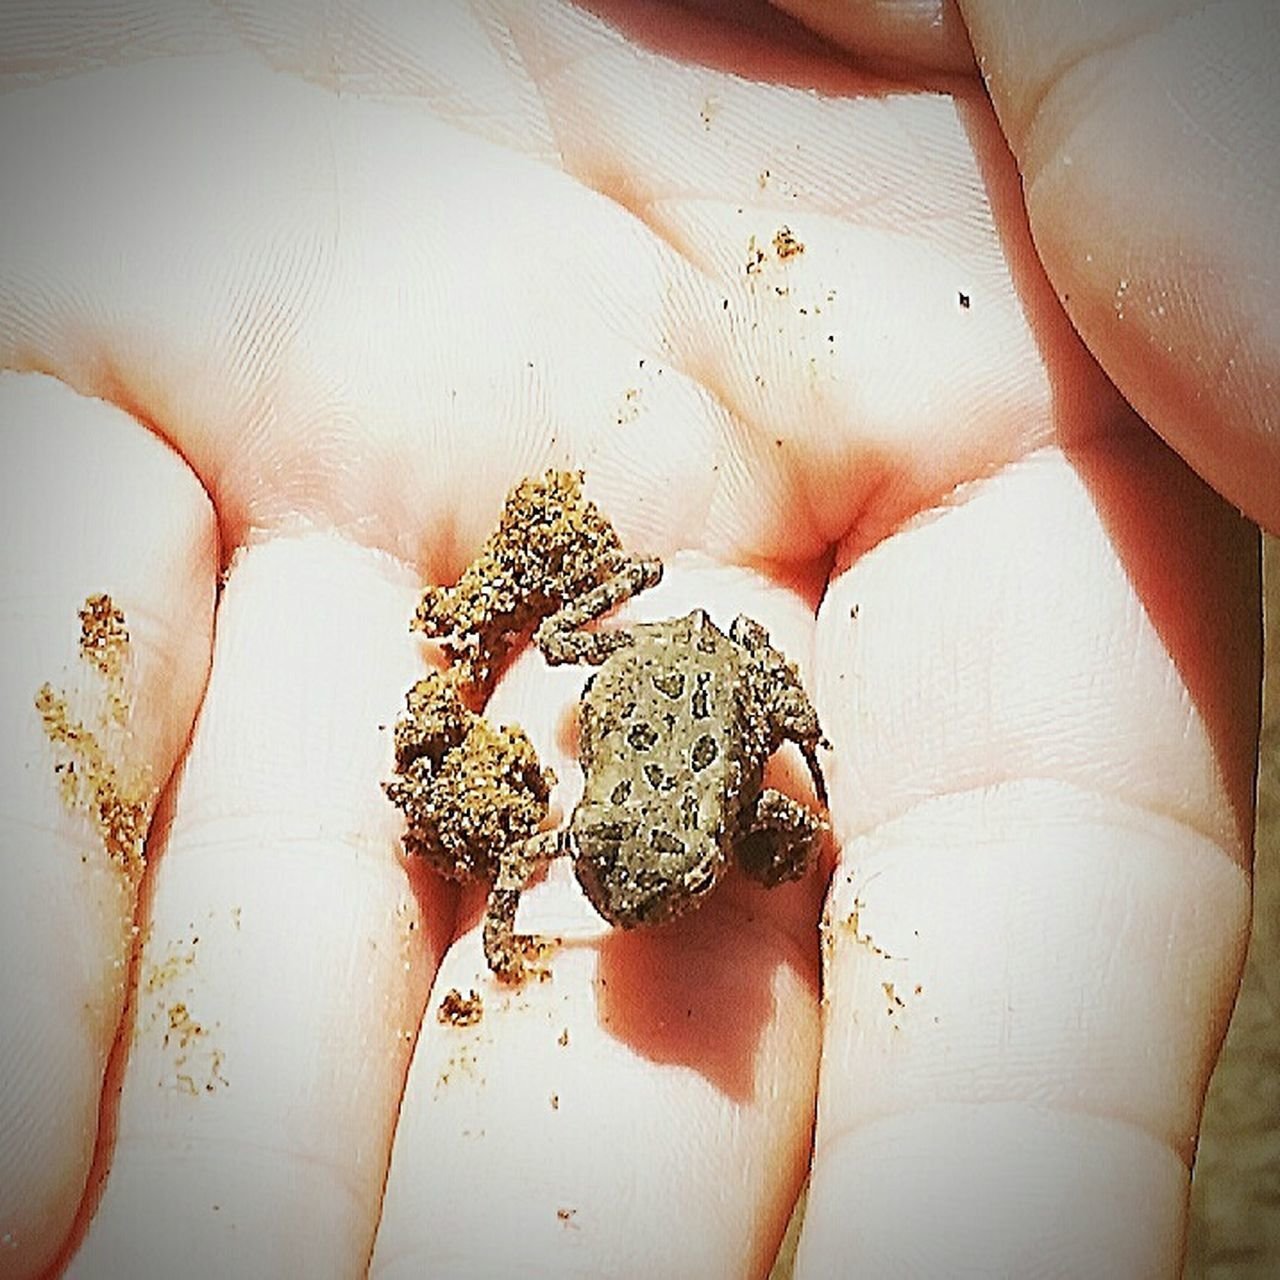 Tiny Toad Nature Outdoors Close-up Human Hand Day Animal Themes Funday Exploring New Territory Outdoors